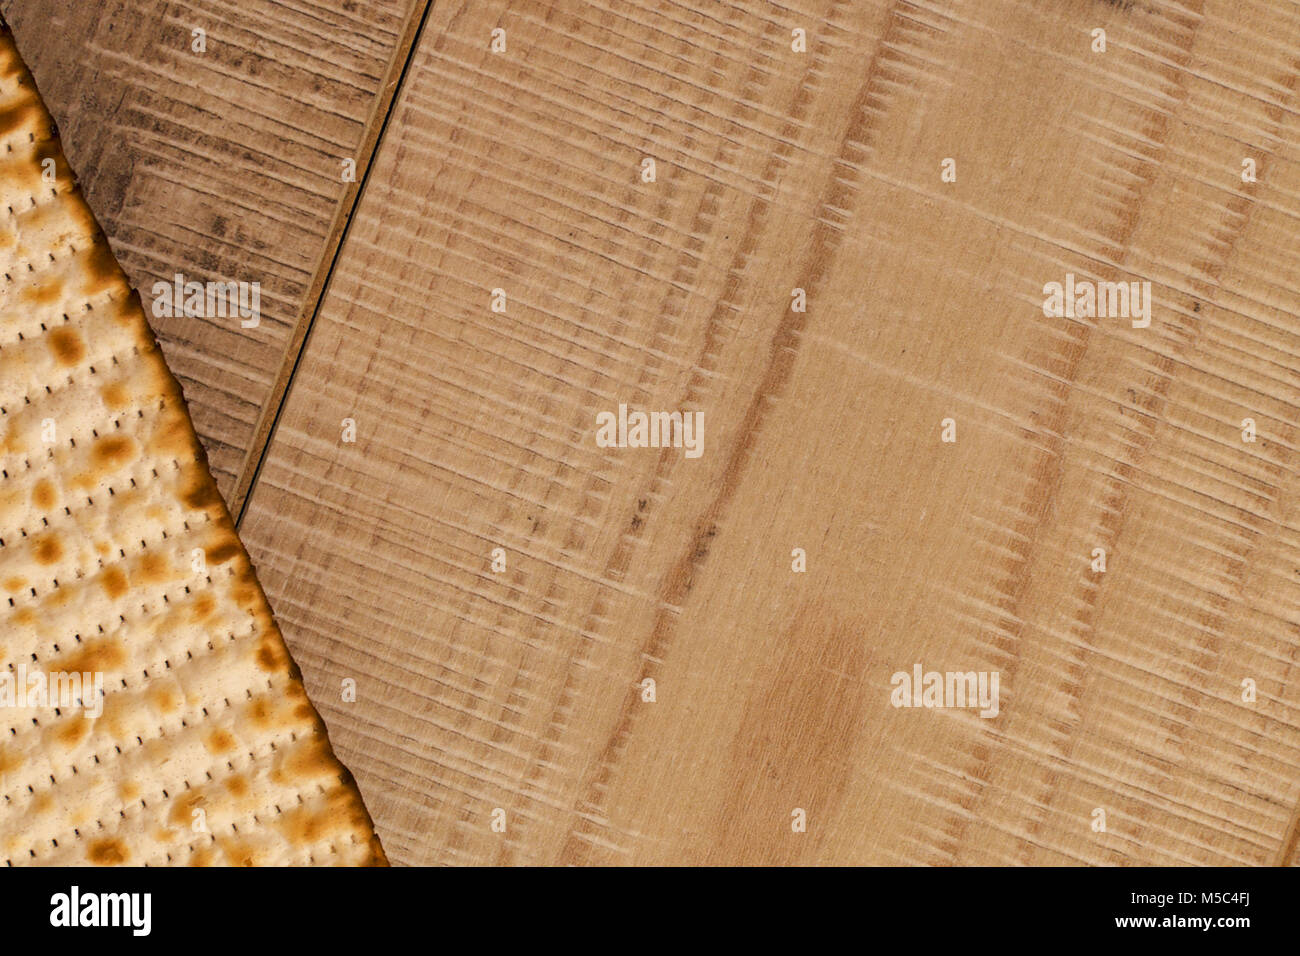 Passover Diagonal background. Jewish traditional Matzah top view on rustic wooden background with copy-space. Israel - Stock Image